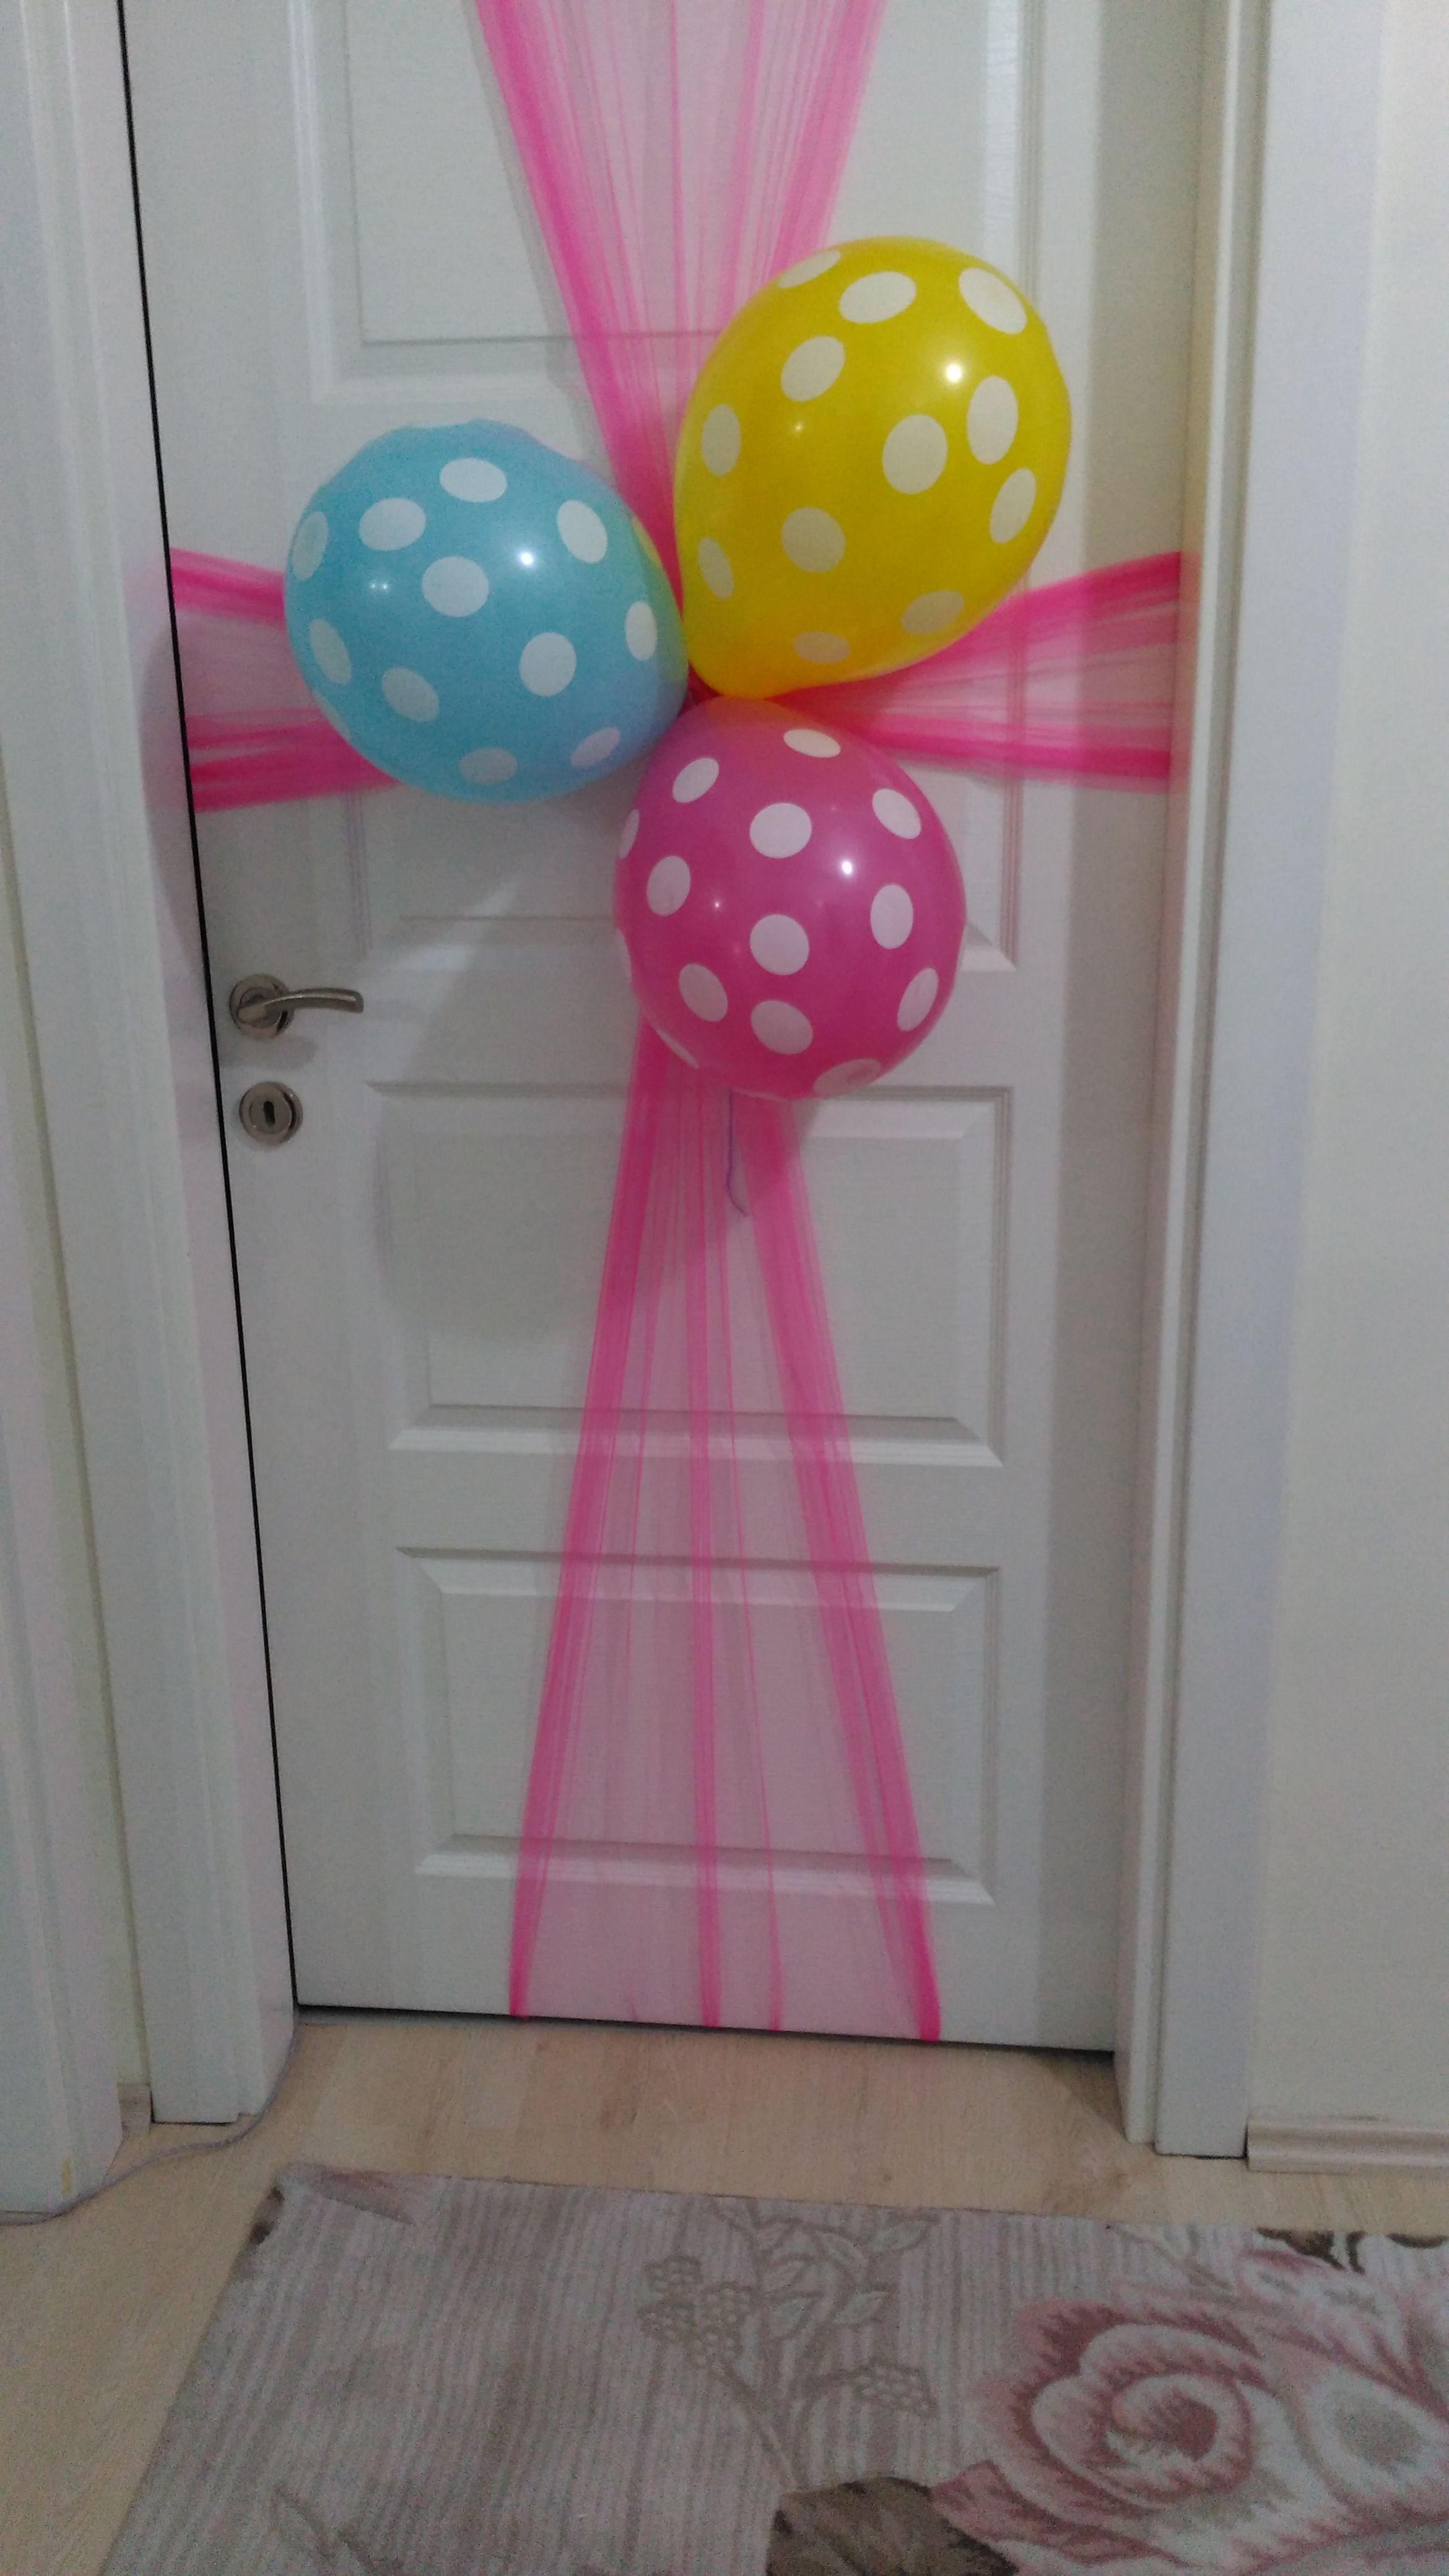 Pin By Crissy Locatto On Blue Sky Birthday Balloon Surprise Birthday Balloons Birthday Traditions